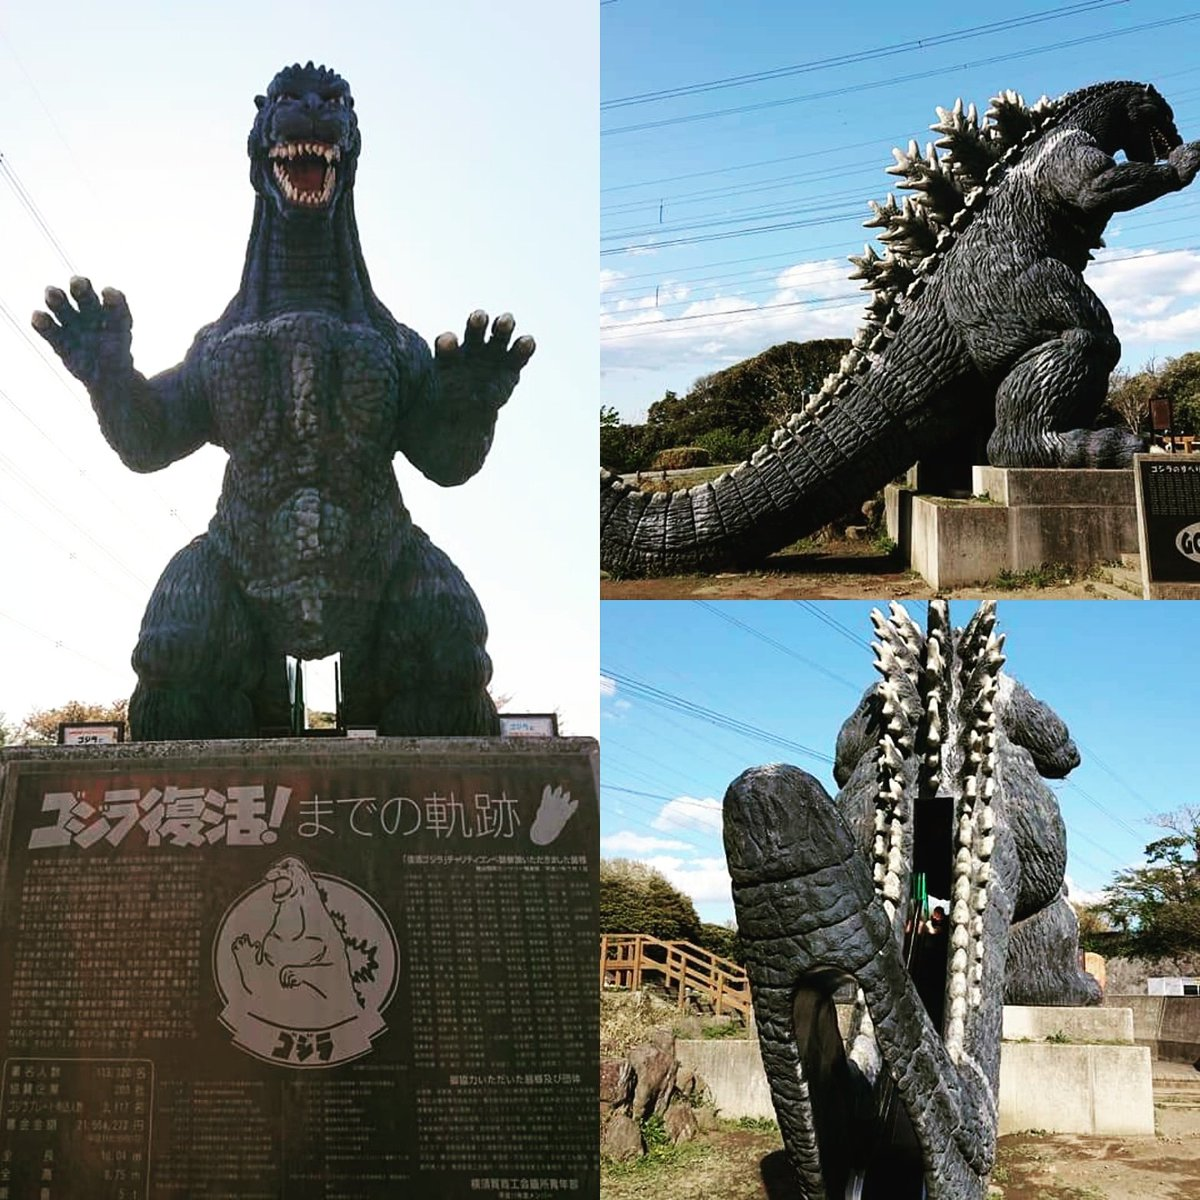 I want to be outside with #godzilla  Missing the #flower #park #tbt #tabbyinjapan  #stayhome #staysafe